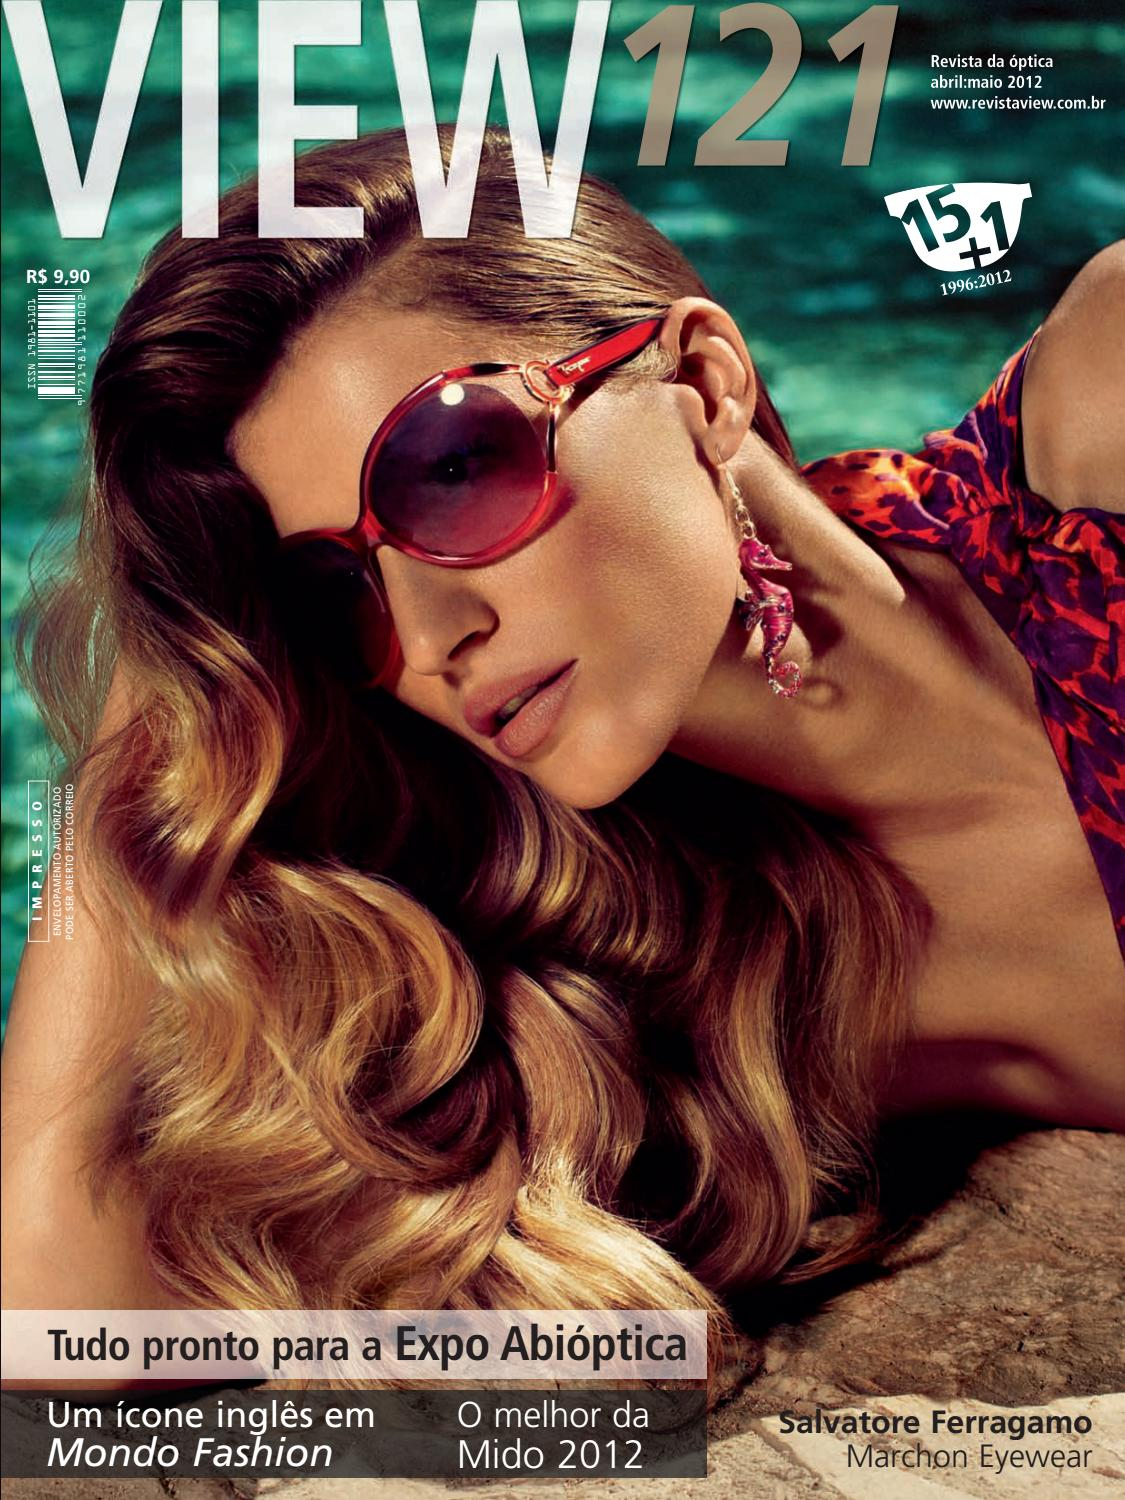 ab205b87284be VIEW 121 by Revista VIEW - issuu